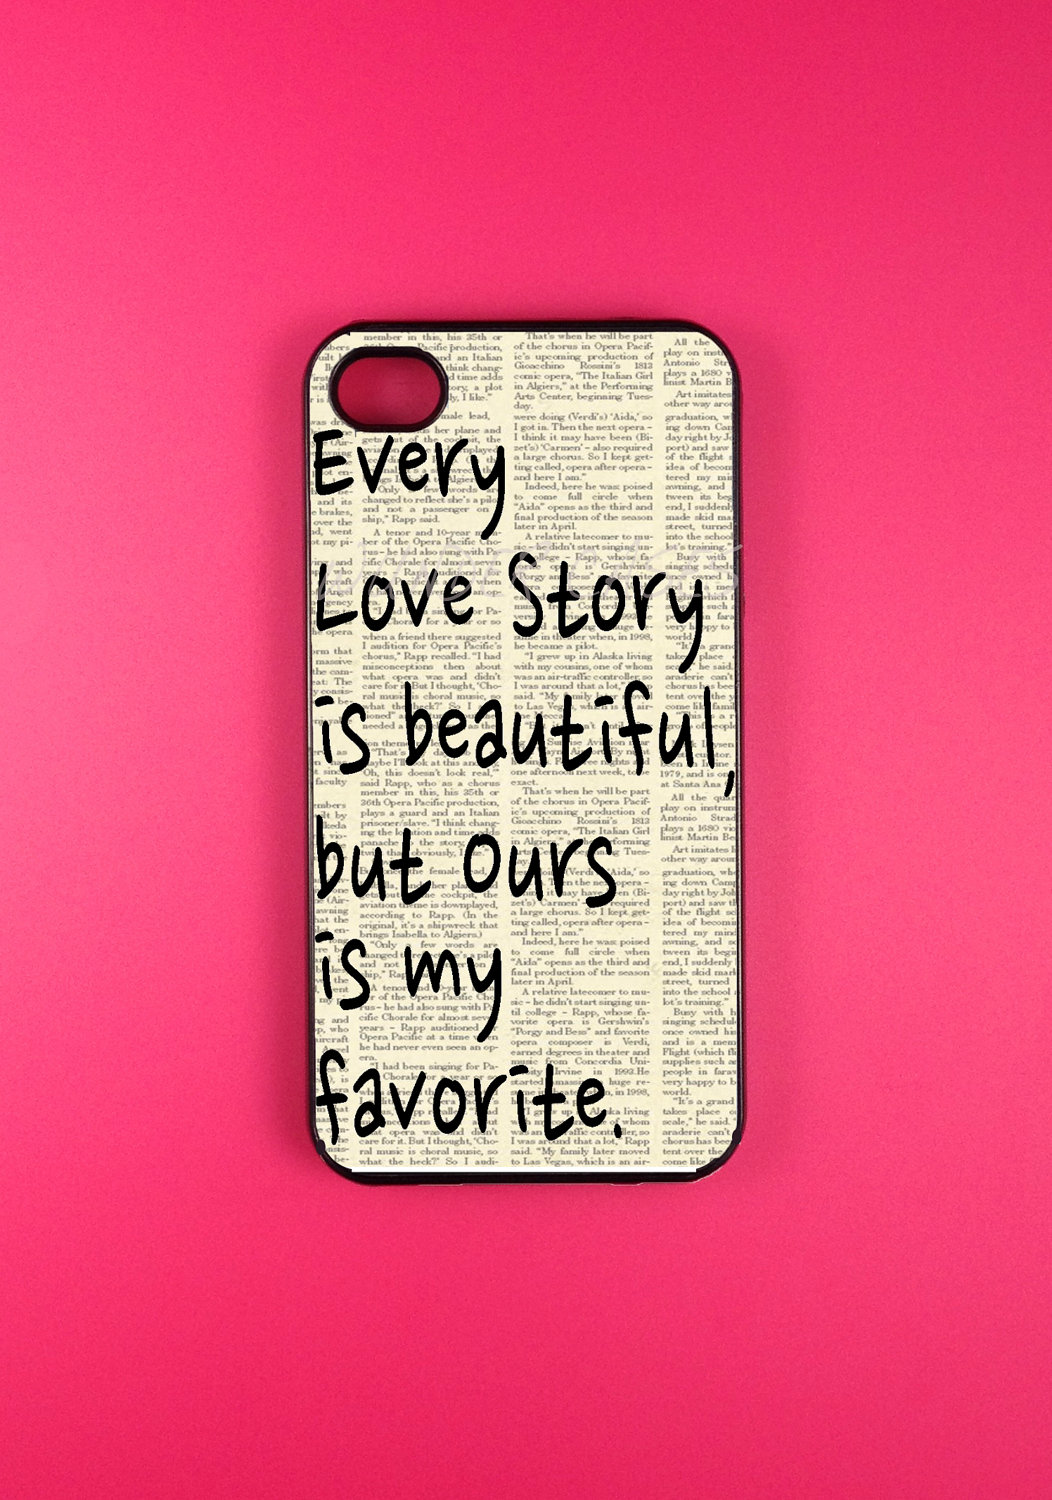 Favorite-iphone-cases-for-brides-modern-tech-weddings-love-story.original